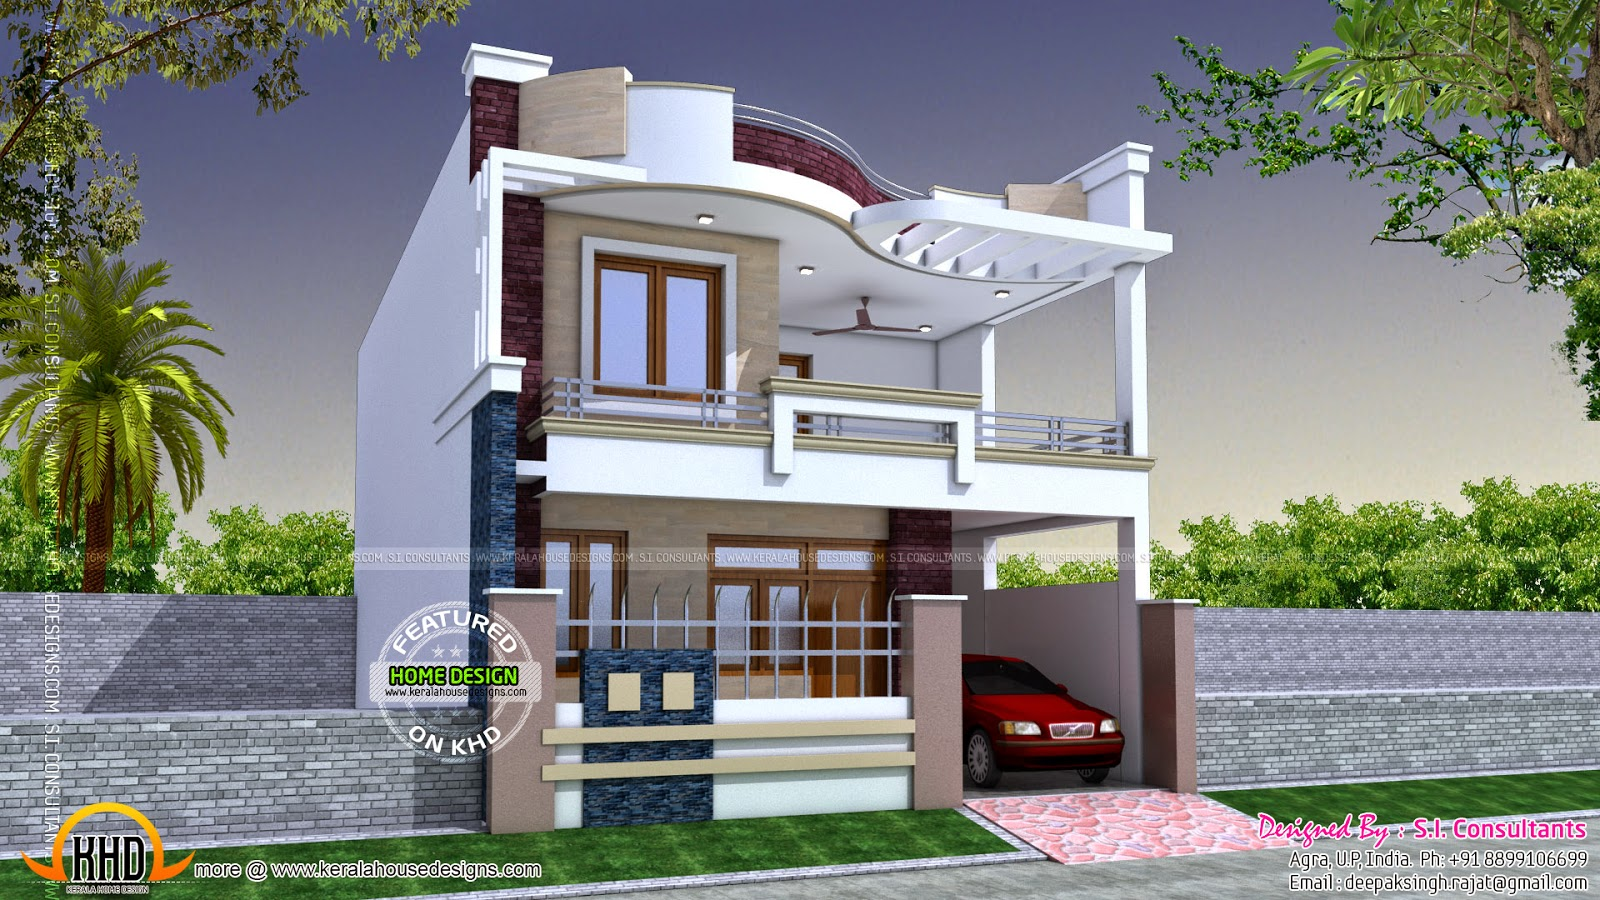 Modern Indian Home Design Kerala Home Design And Floor Plans: home design